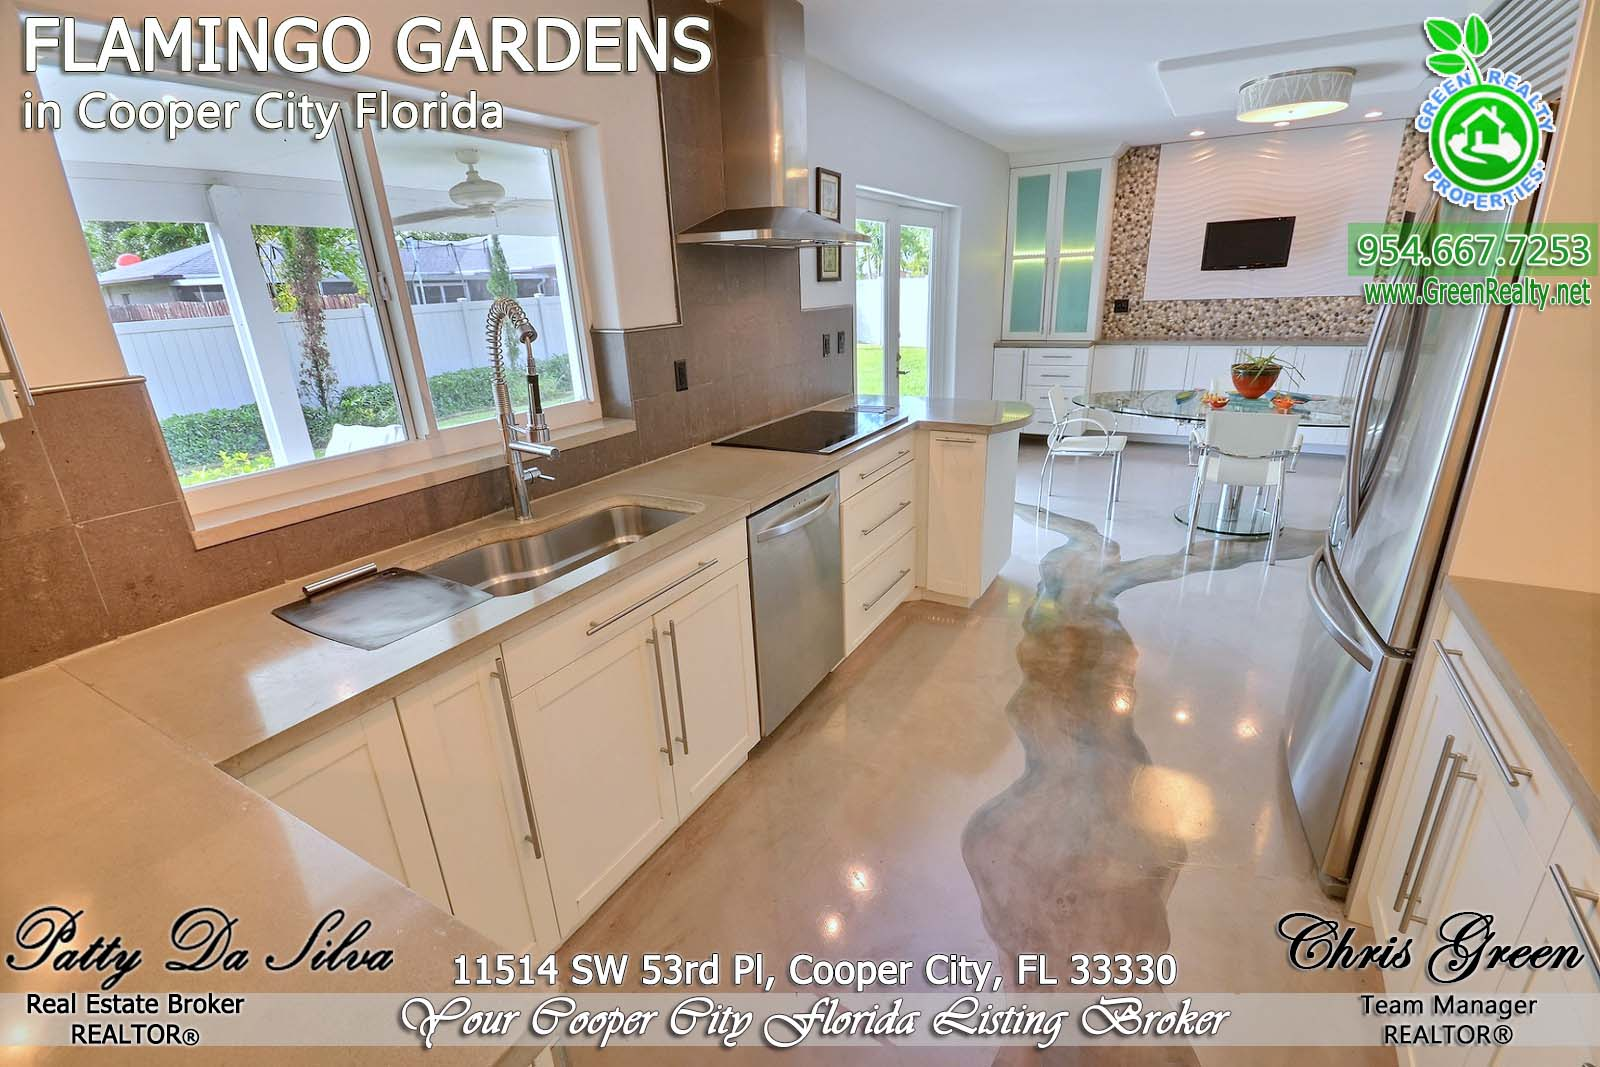 18 Flamingo Gardens Cooper City Homes For Sale (15)_1